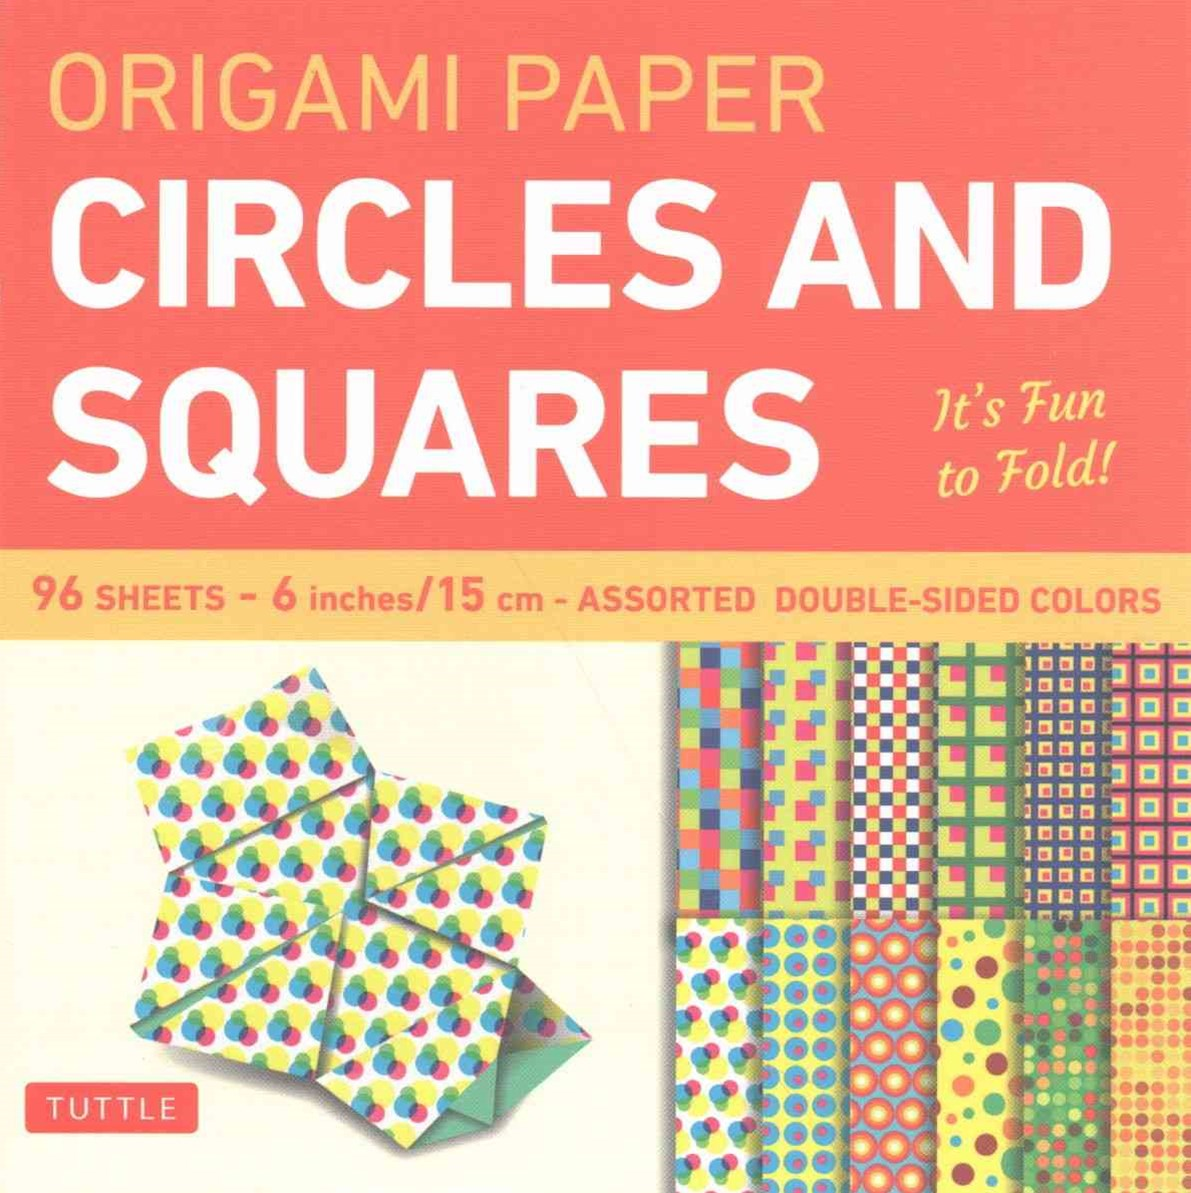 Origami Paper Circles and Squares